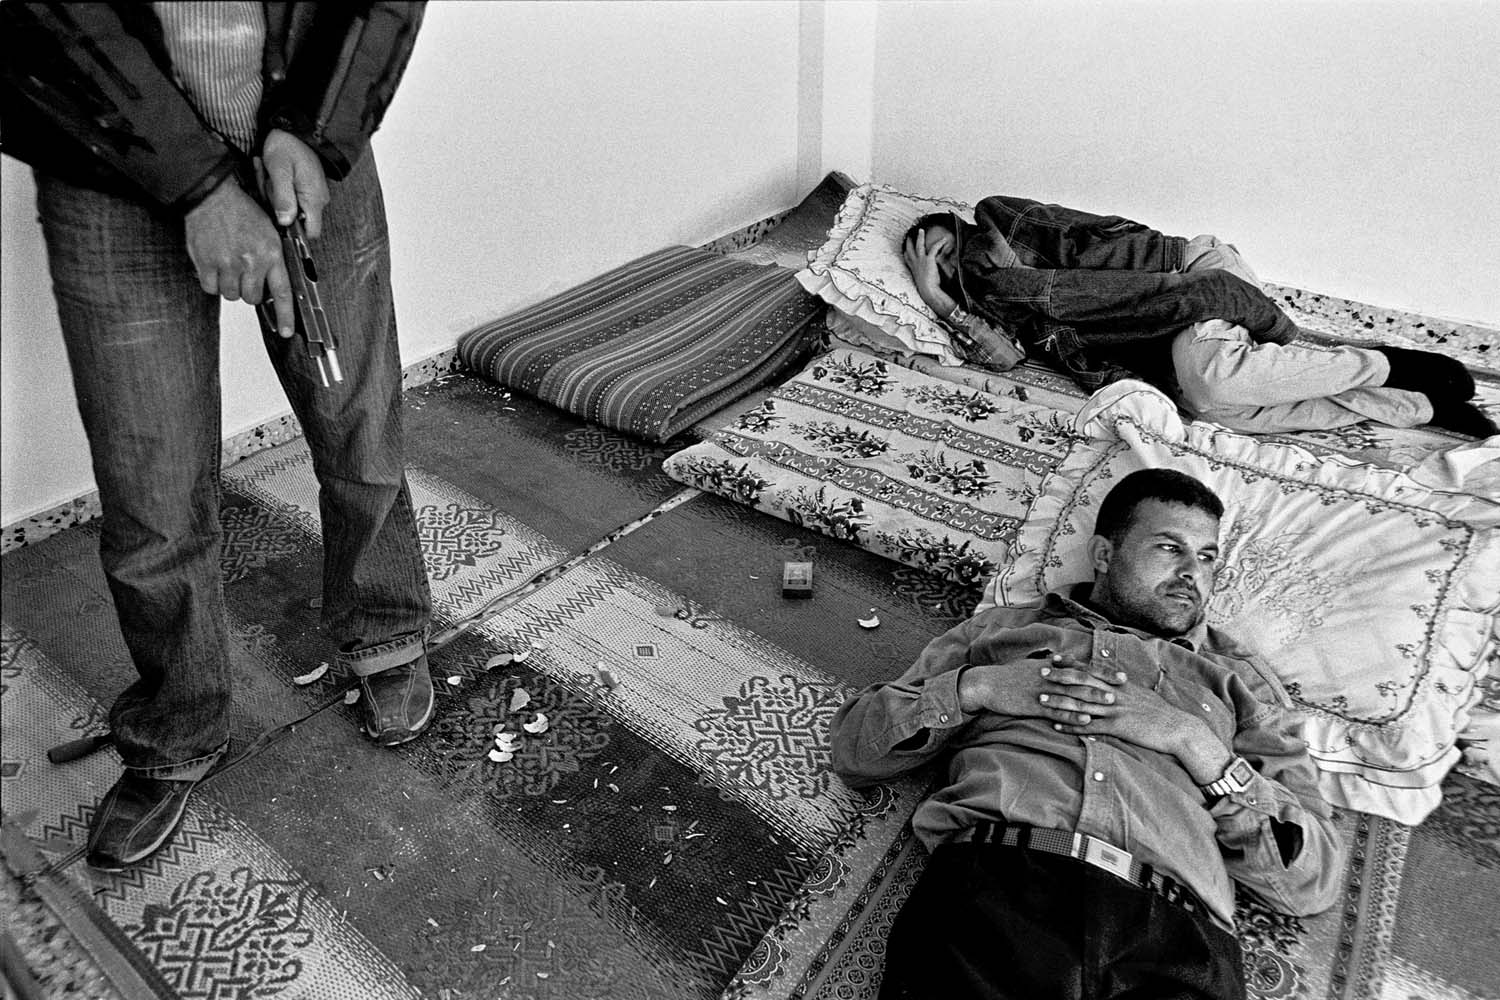 A siesta during an Israeli raid on the refugee camp of Rafah in the south of Gaza Strip, 2006.